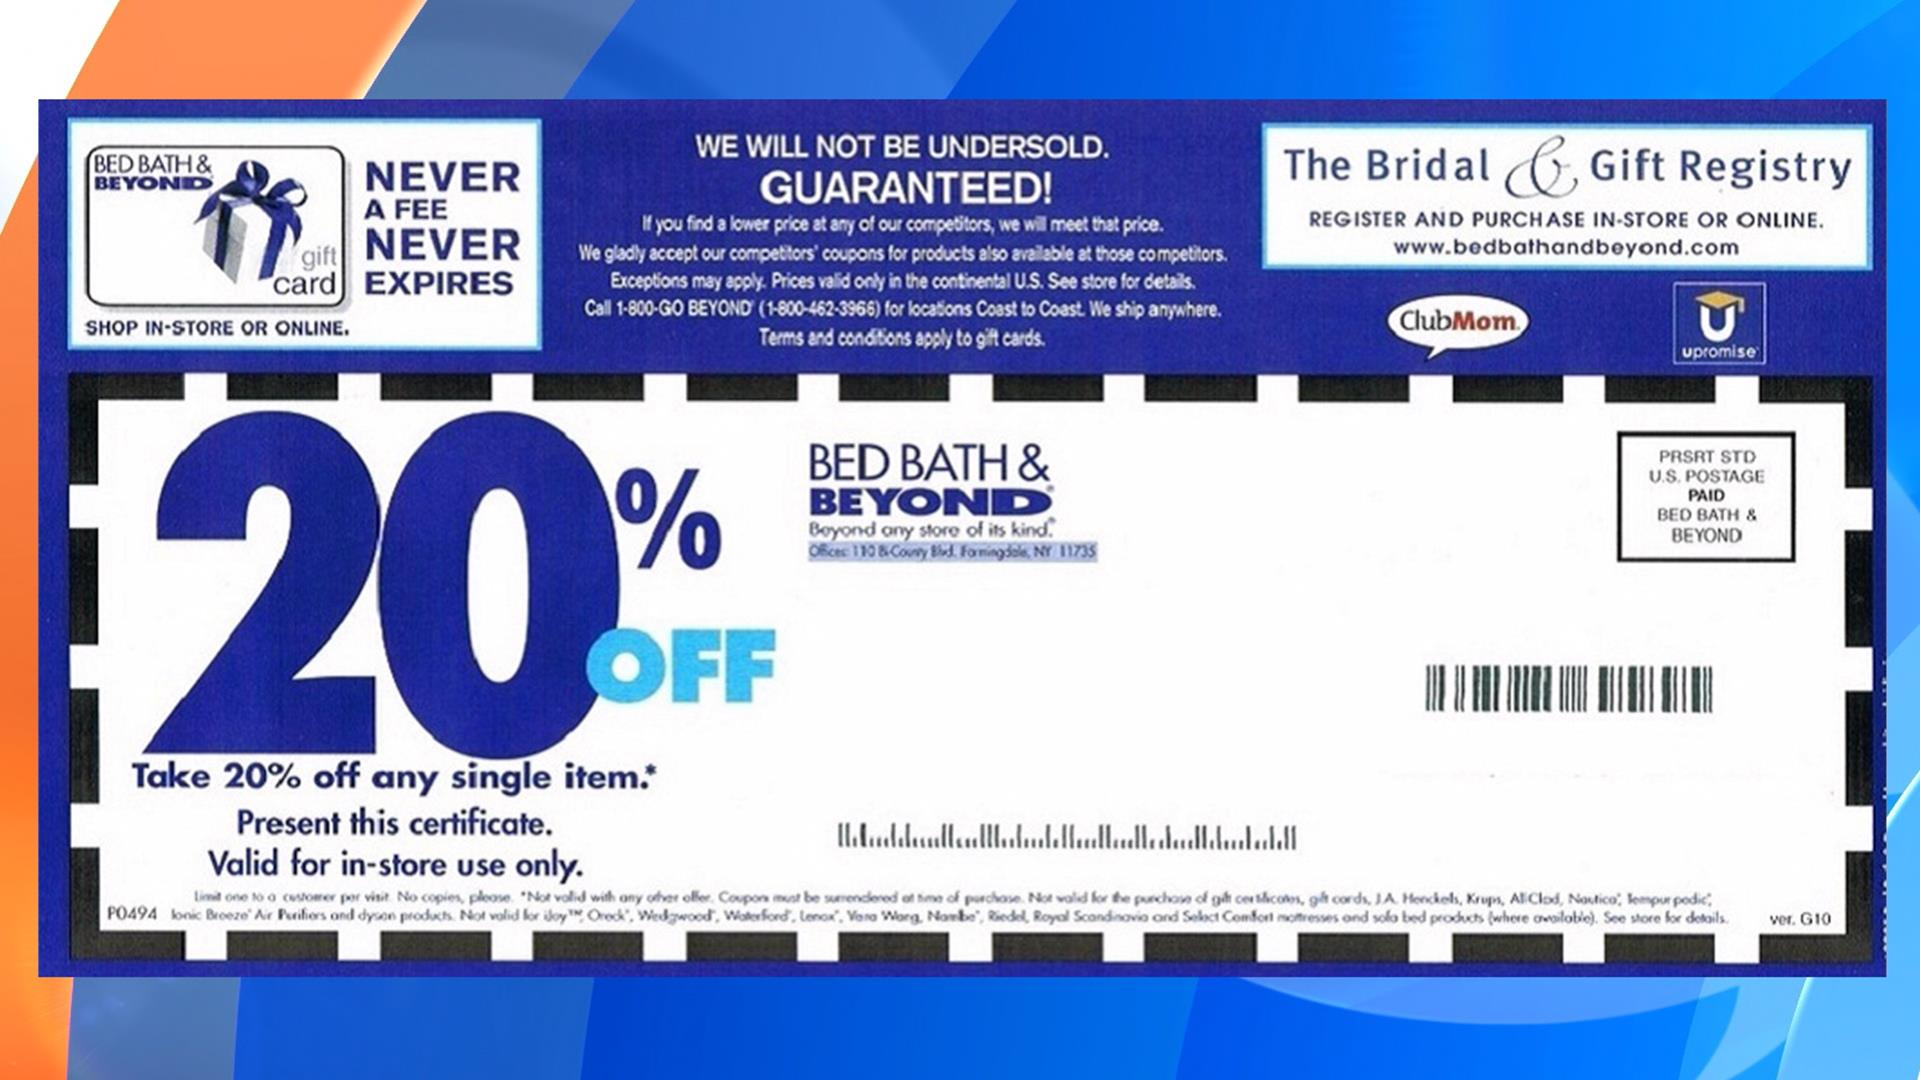 Bed bath and beyond might be getting rid of 20 percent off coupons